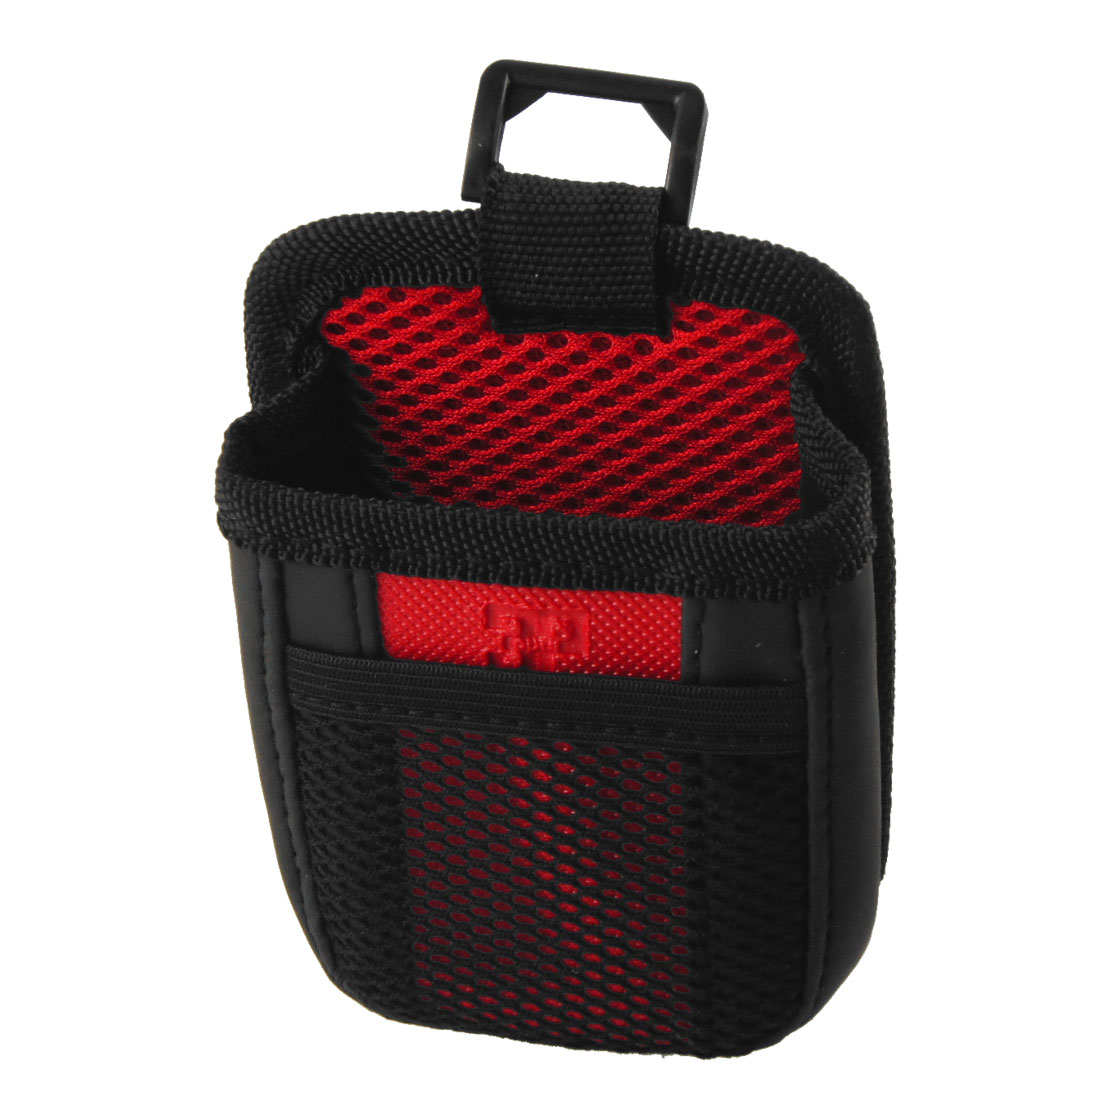 Auto Car Air Vent Phone Storage Pouch Holder Black Red